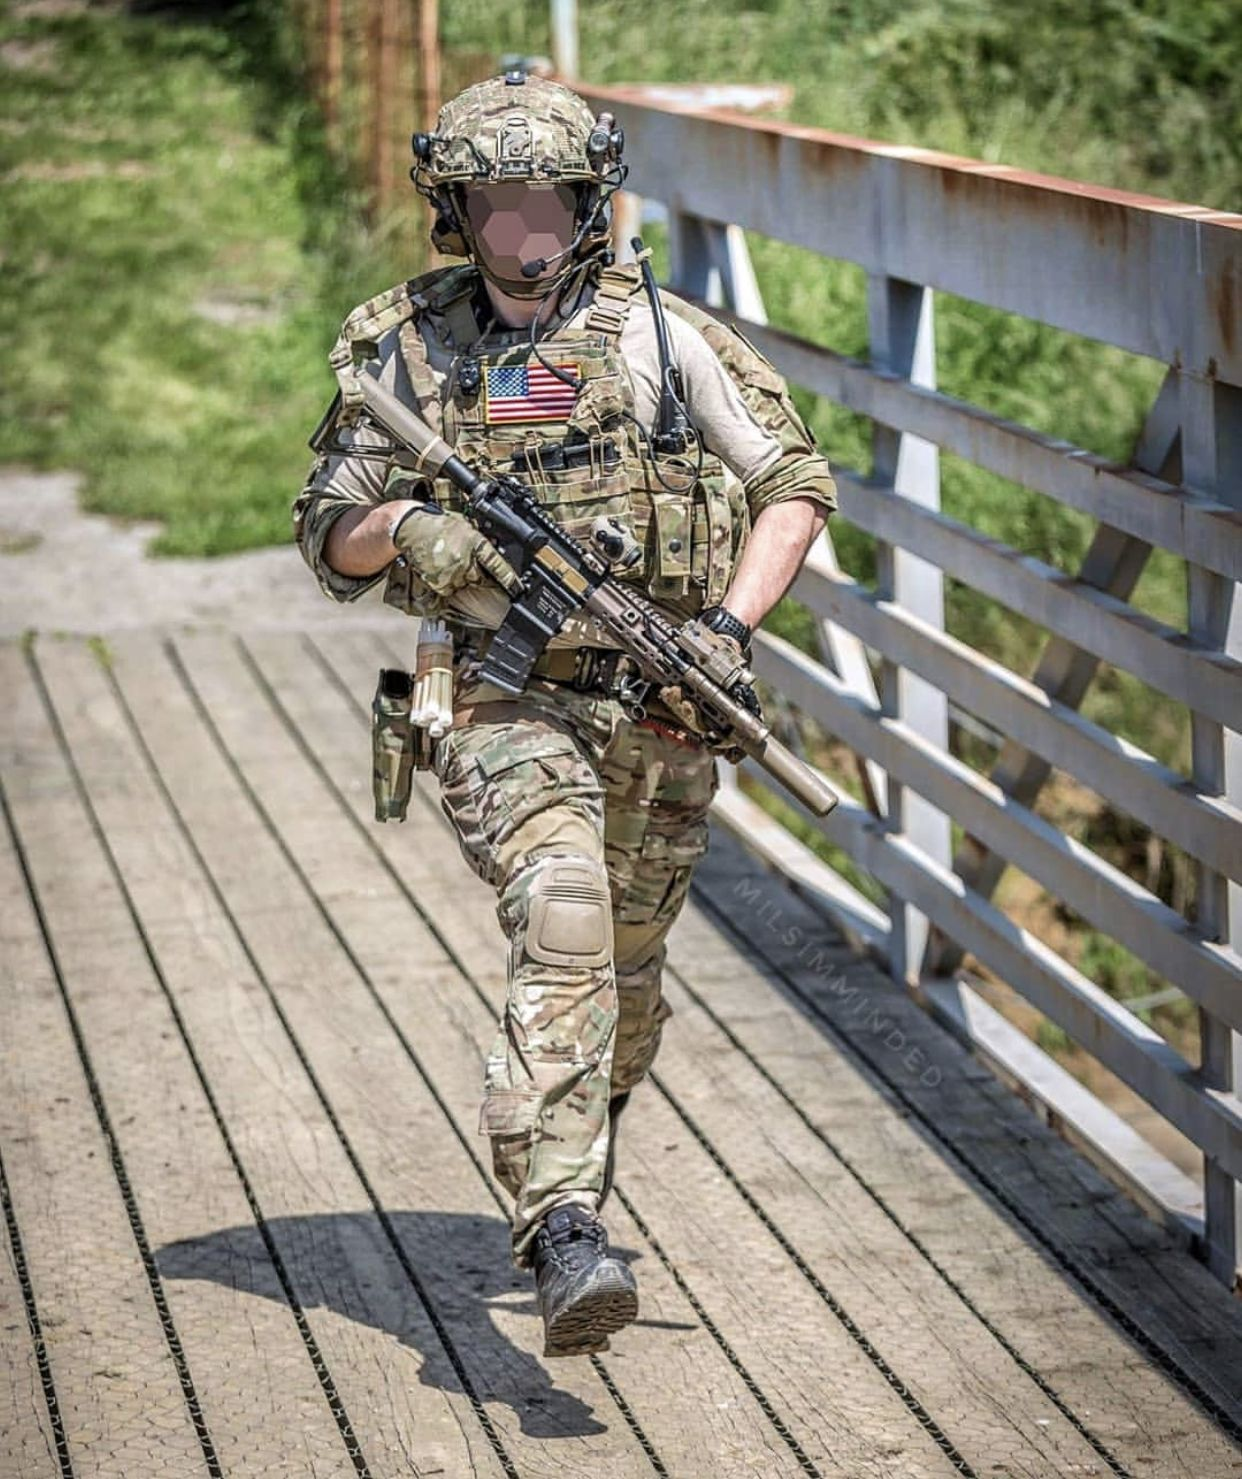 Pin by Christian on Military/Tactical Military gear